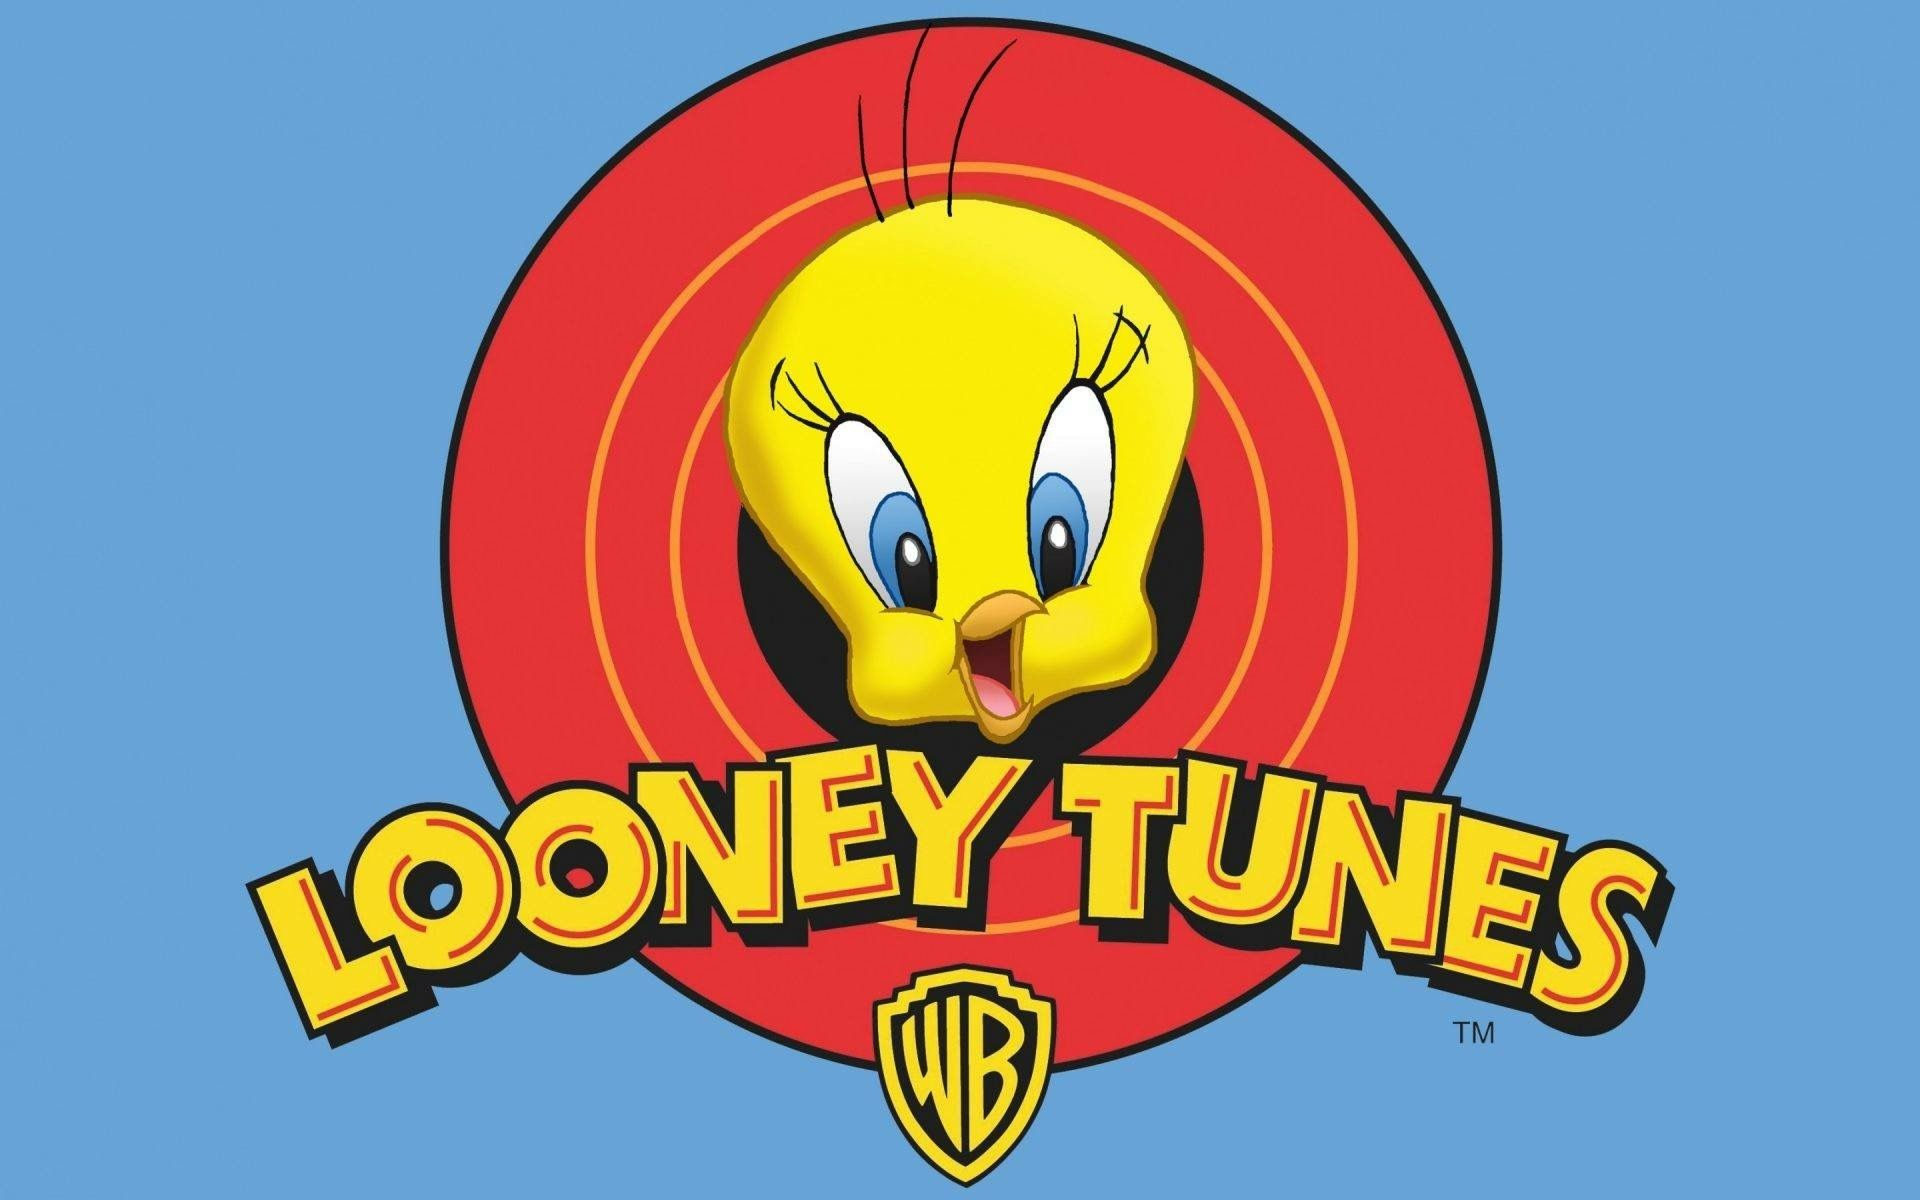 Pin By Tk2477 On ルーニーテューンズ Looney Tunes Looney Tunes Cartoons Looney